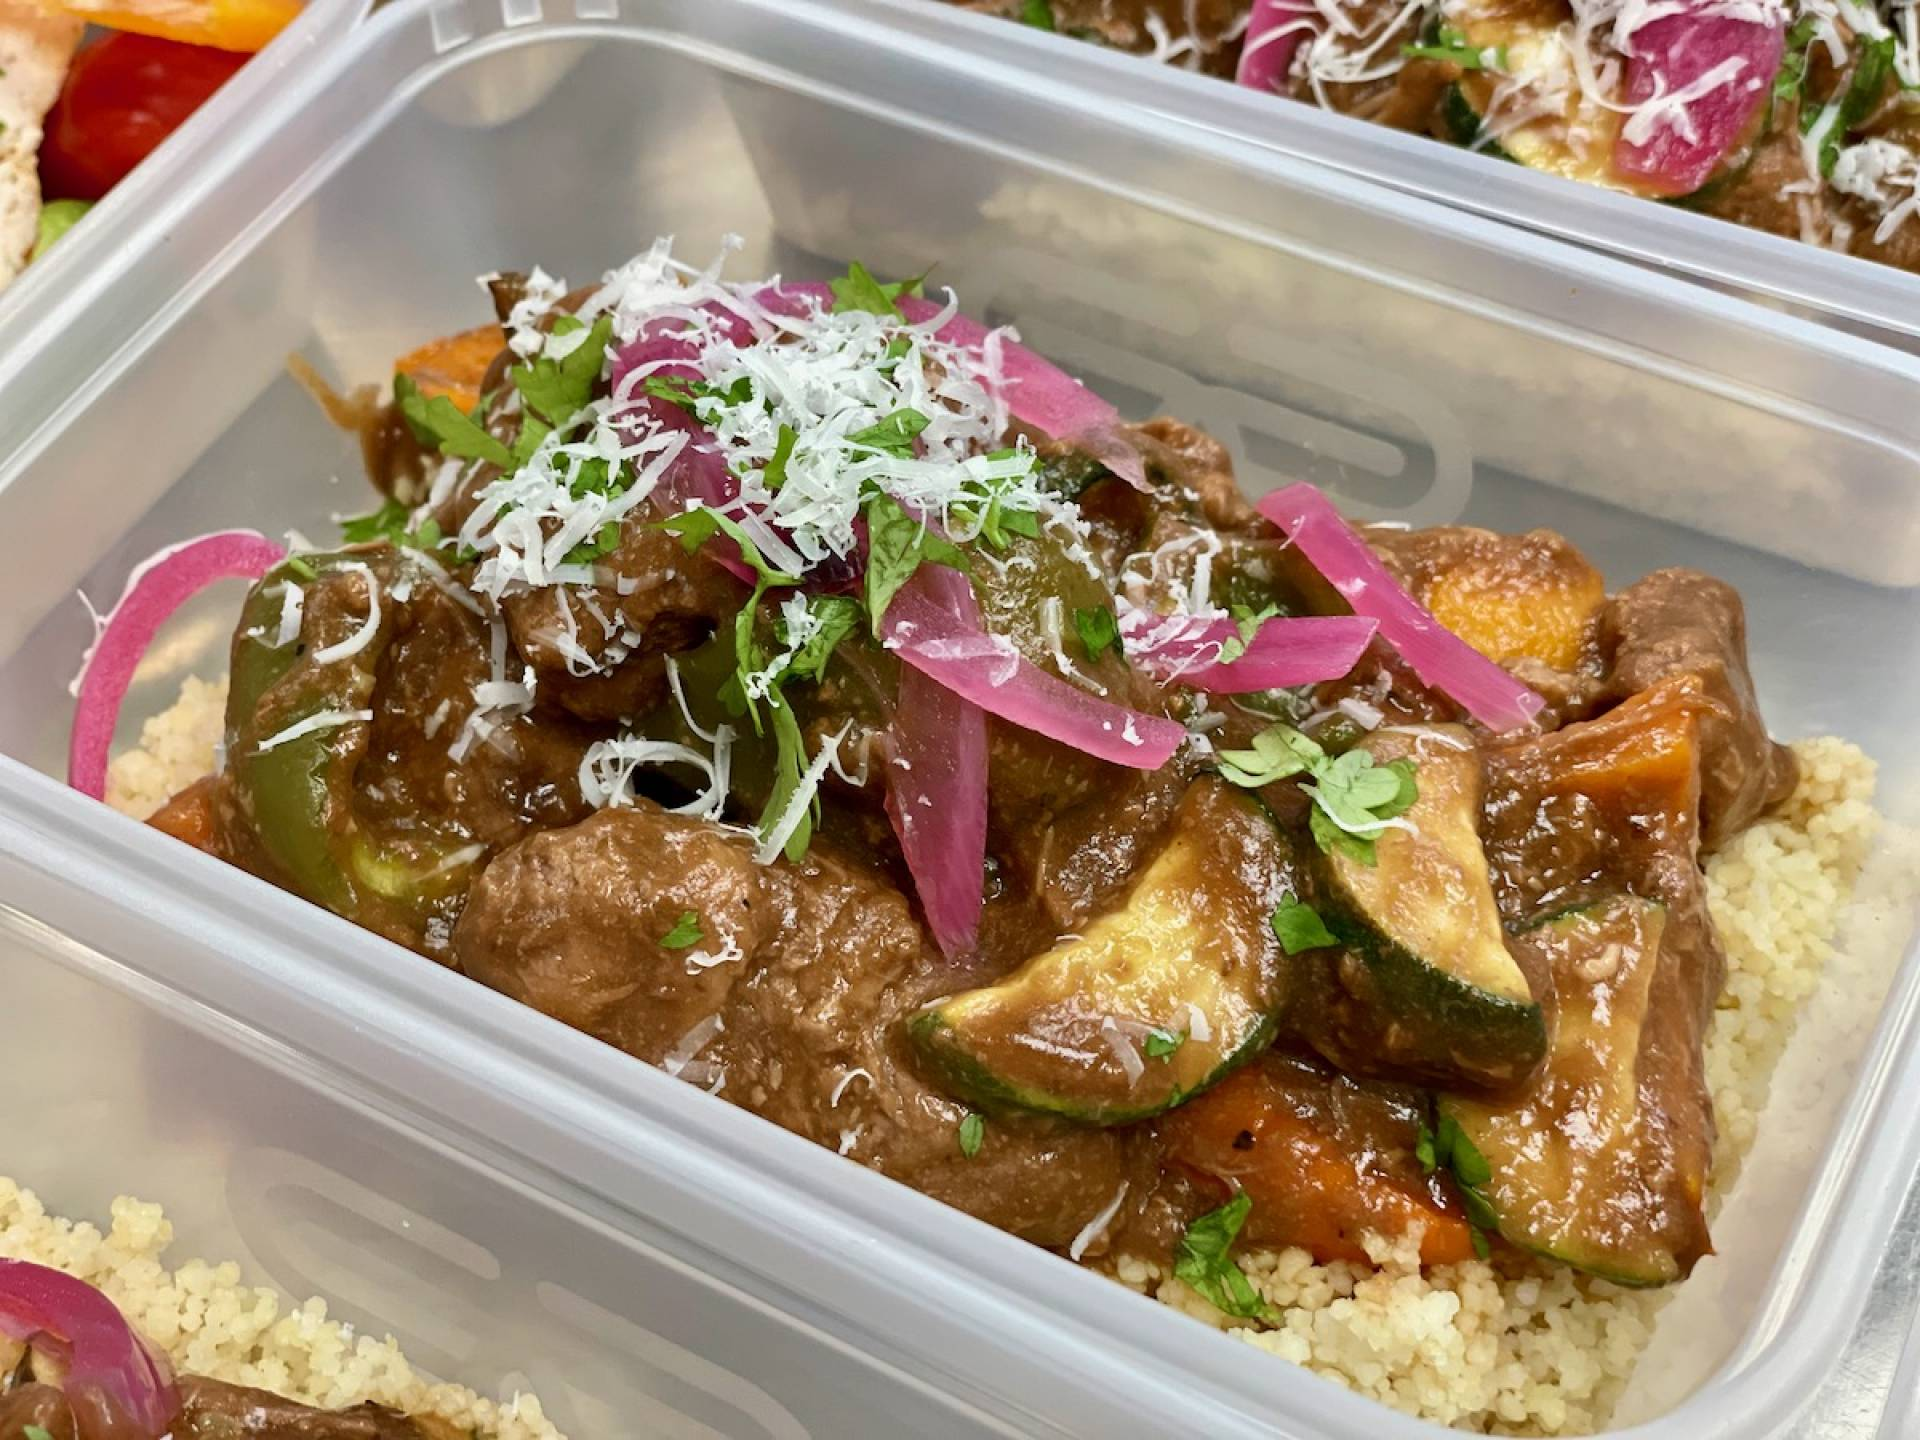 Summer Beef Casserole with Cous Cous